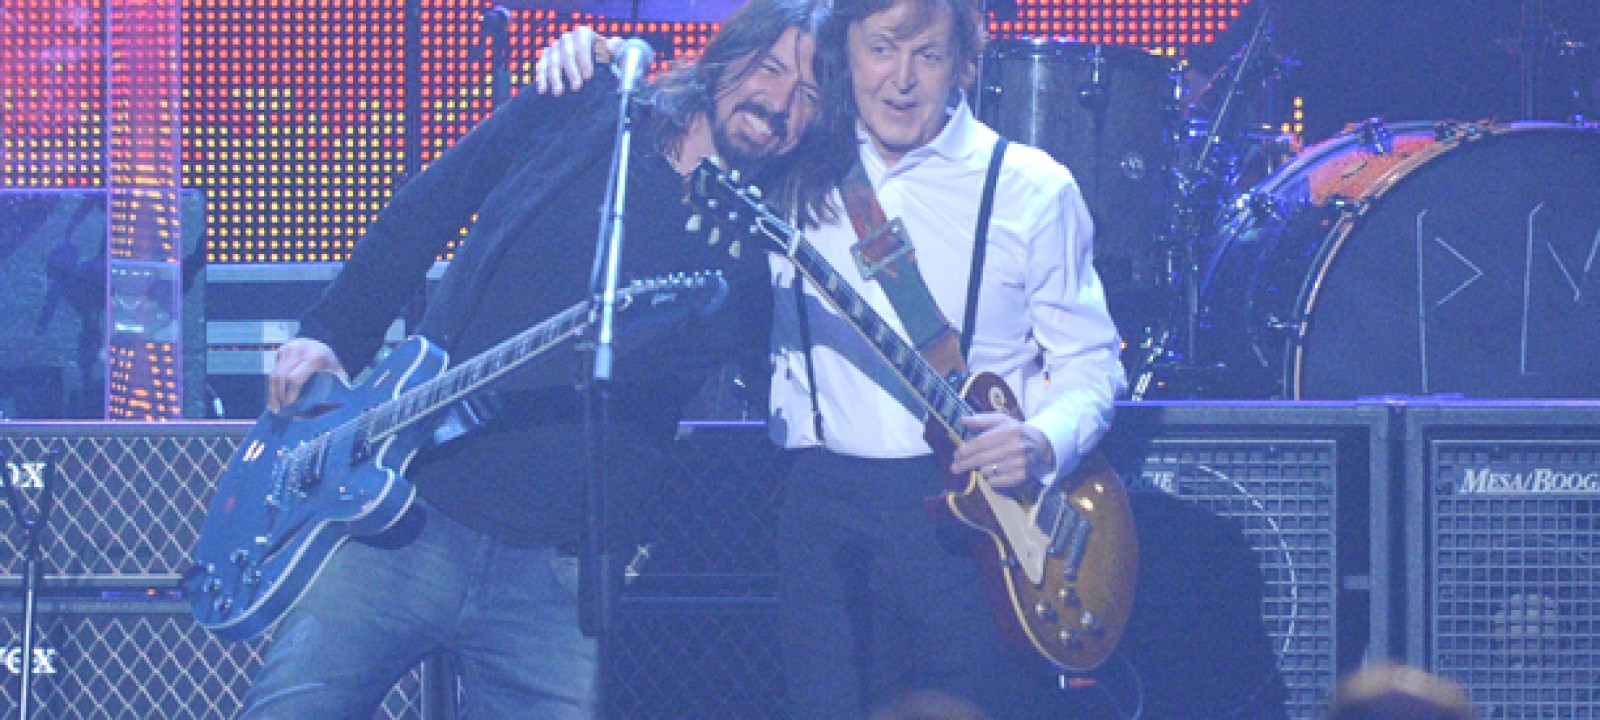 2012 MusiCares Person Of The Year Tribute To Paul McCartney – Concert